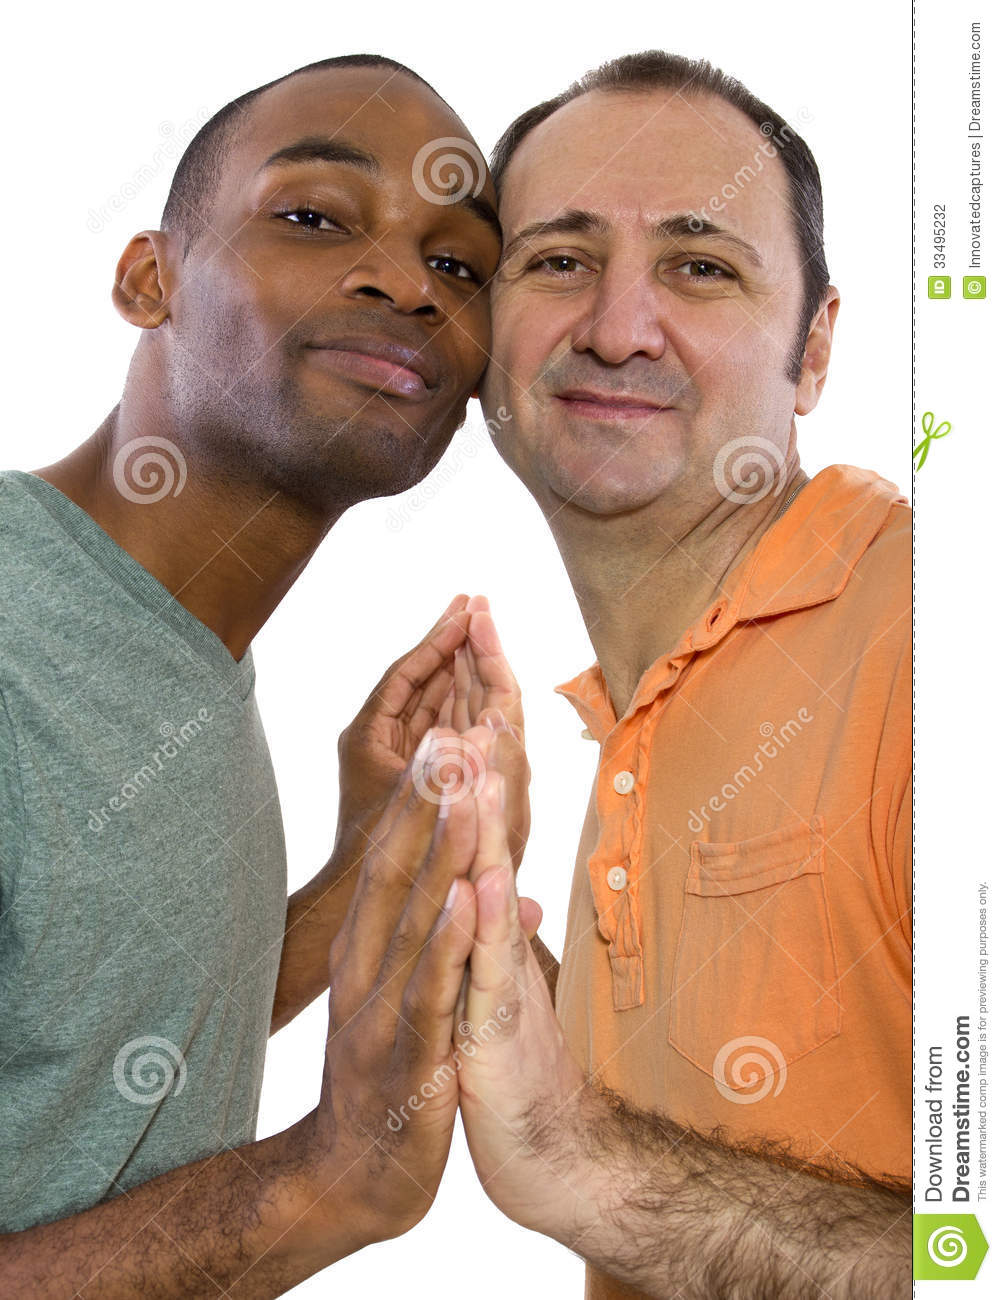 Gay Lovers gay lovers stock photo. image of gender, partnership - 33495232